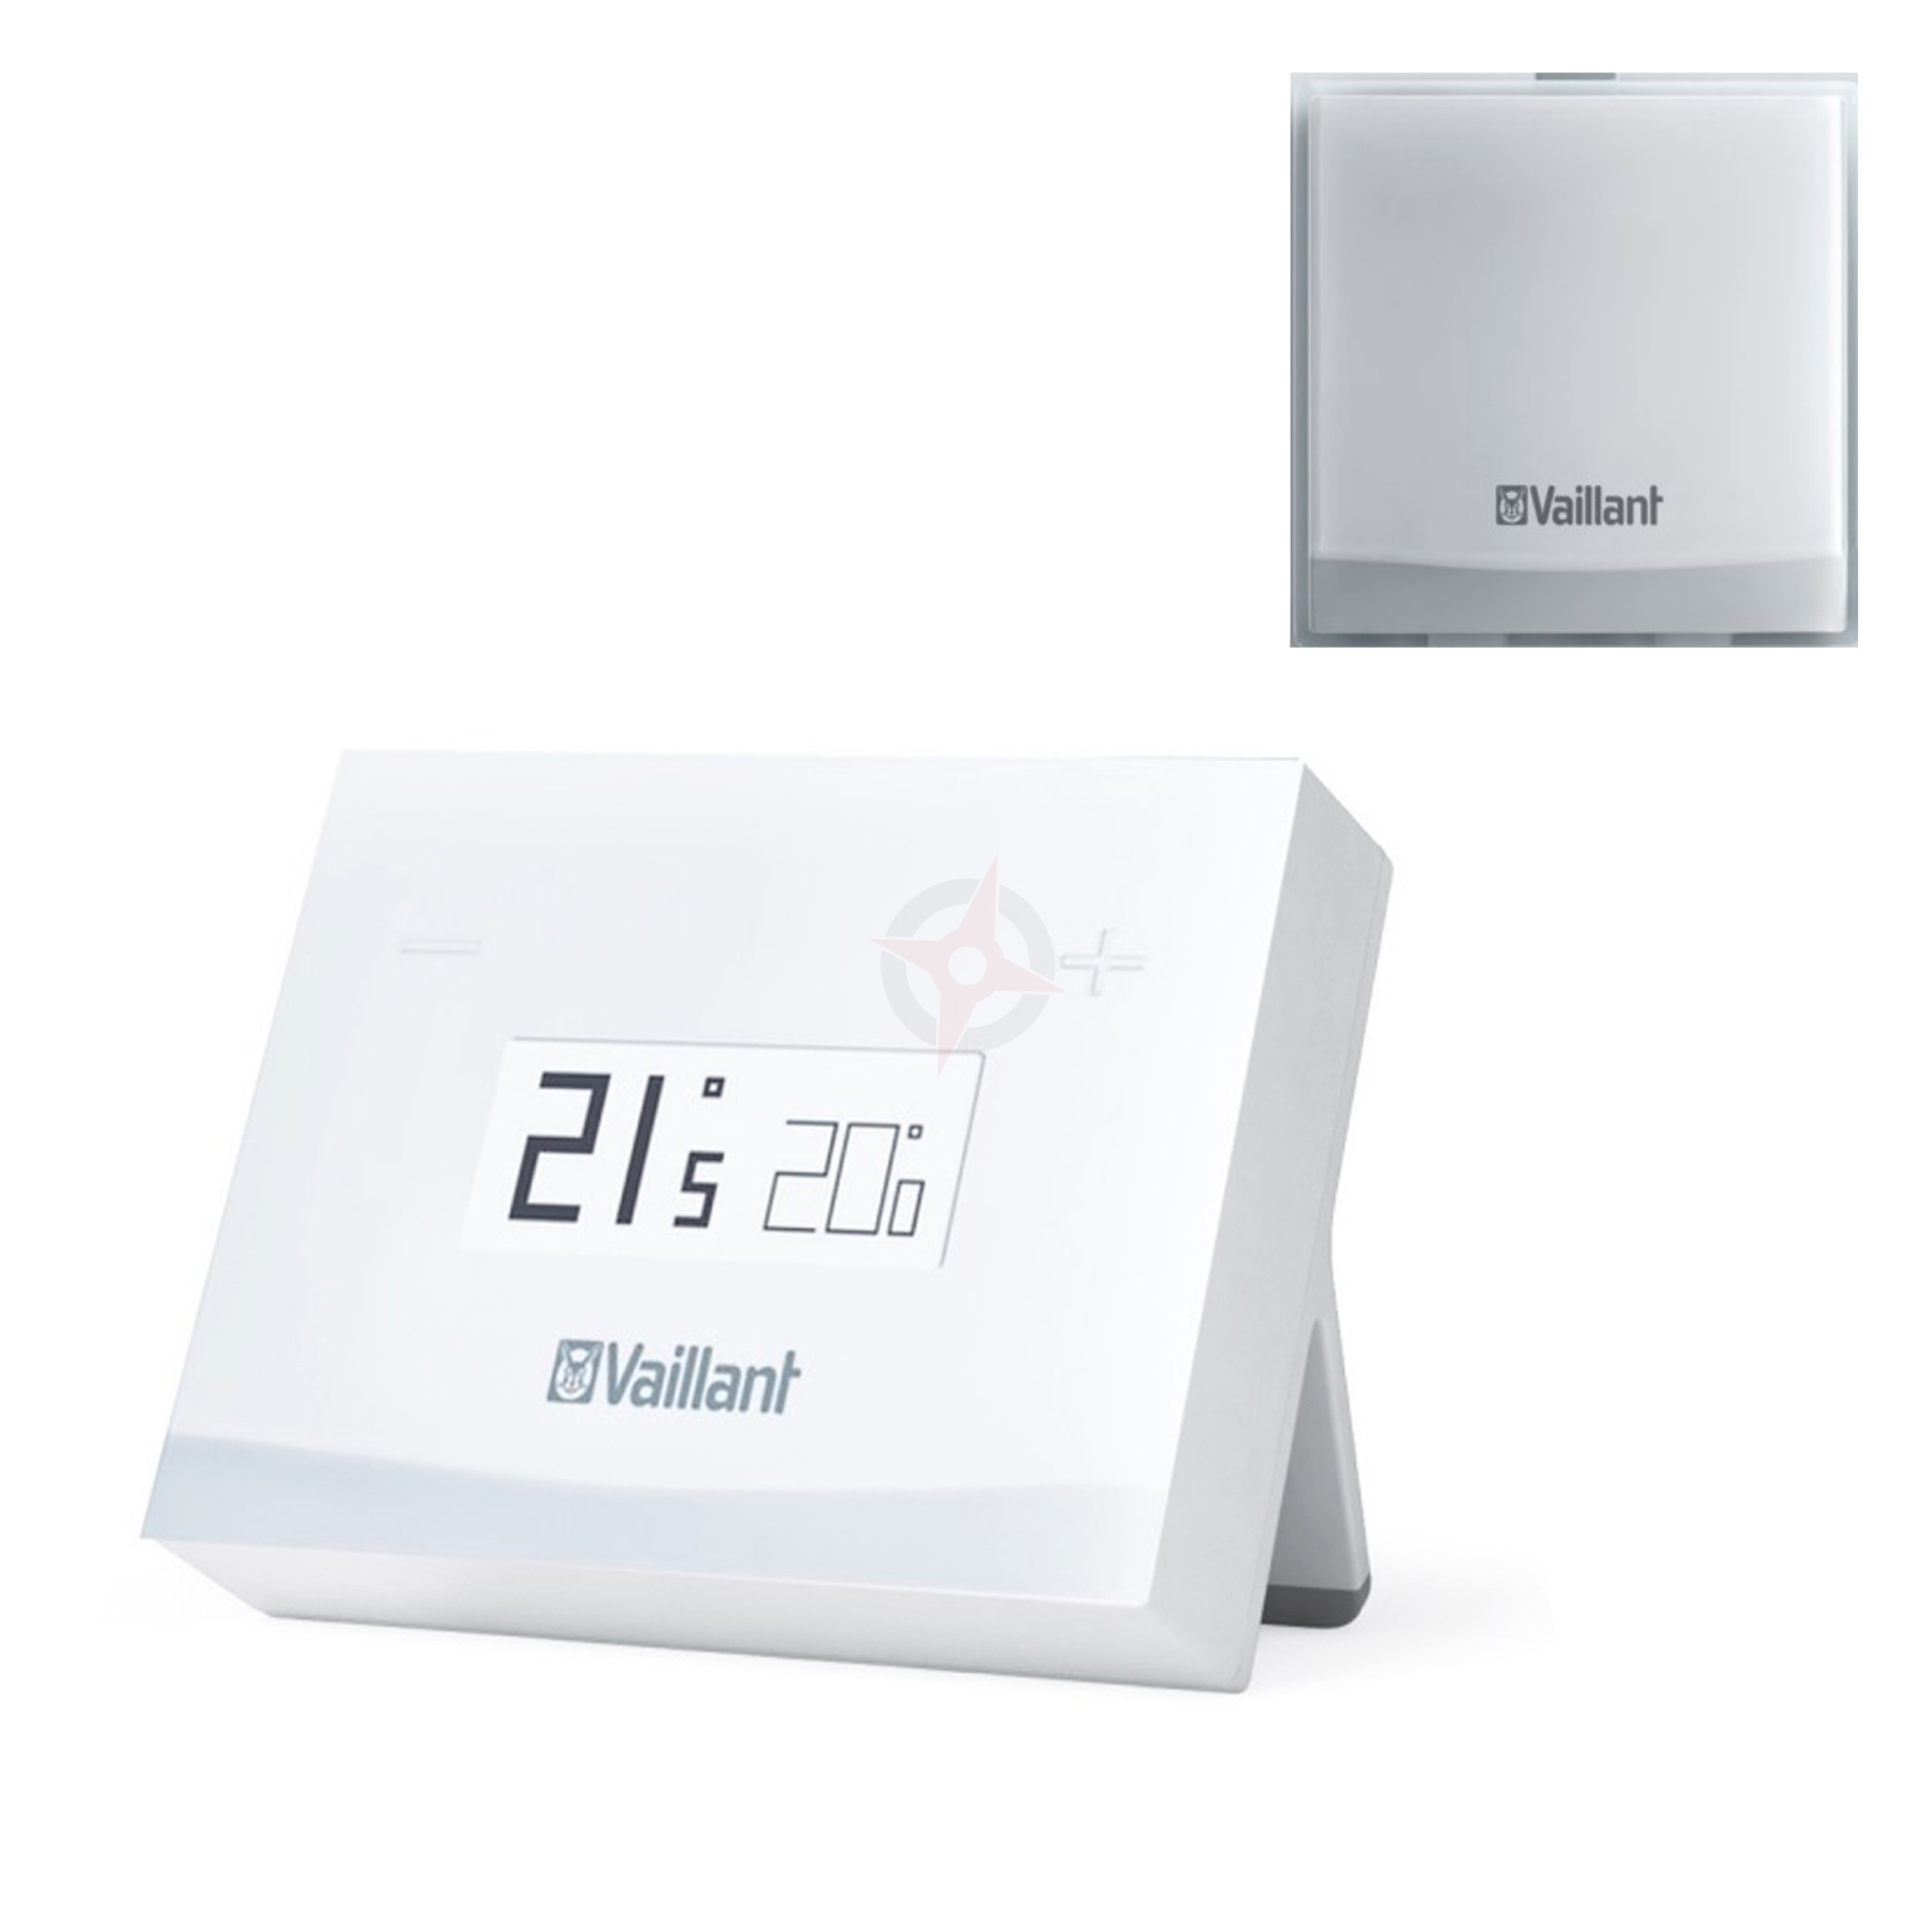 Vaillant vSMART Internet Room Thermostat - Combi Pack